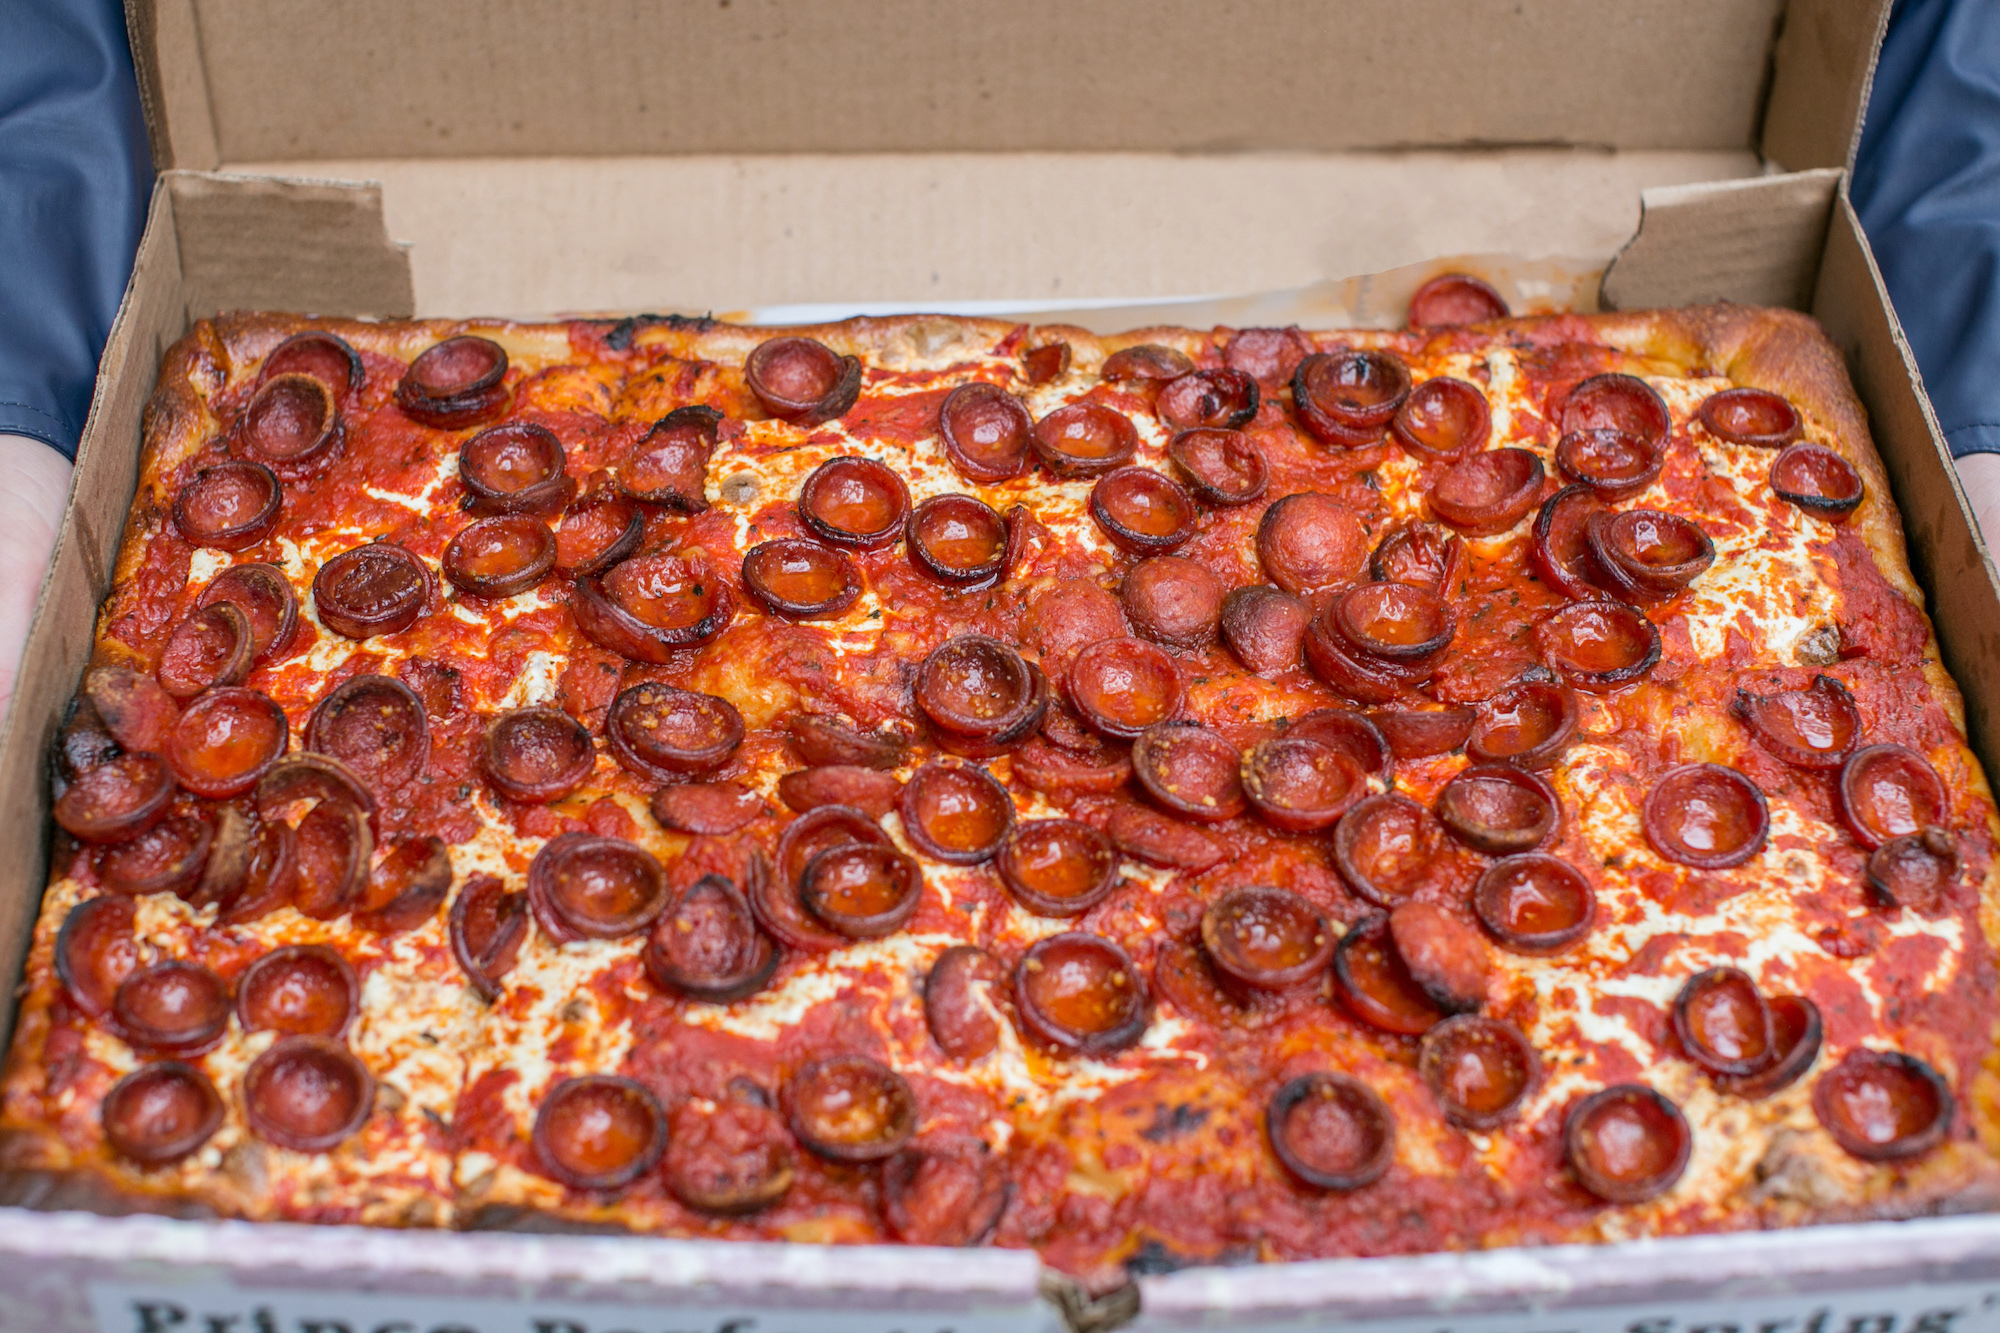 A full pie of square pizza with pepperoni cups.